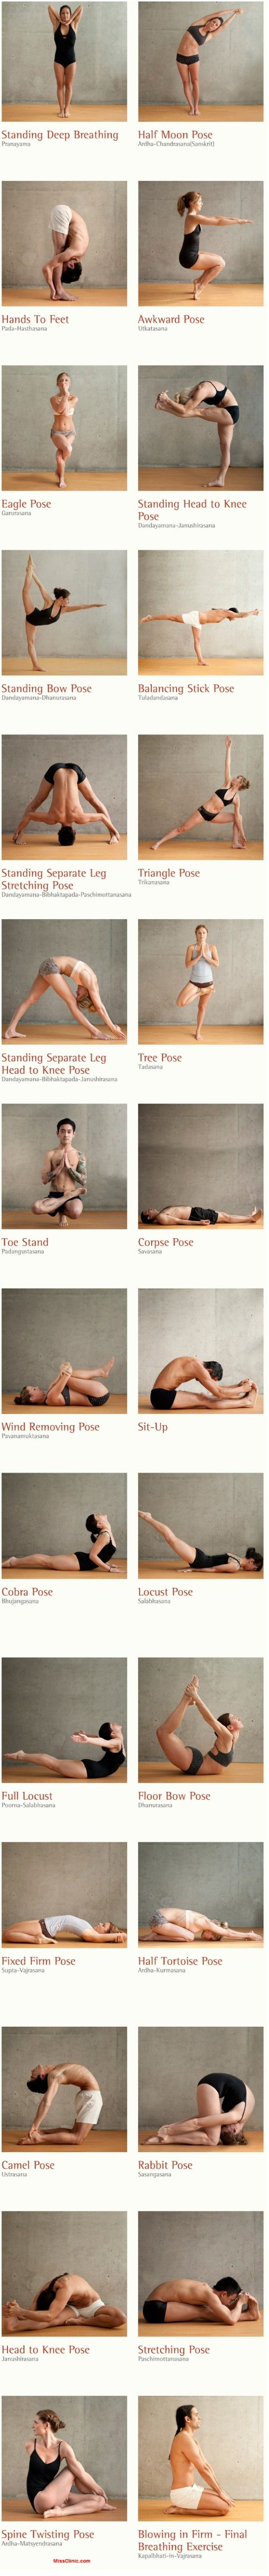 26 Healthy Yoga Postures... I shall try, but if you don't hear from me it means I'm in a knot in the floor & can't reach my phone!!! :-D